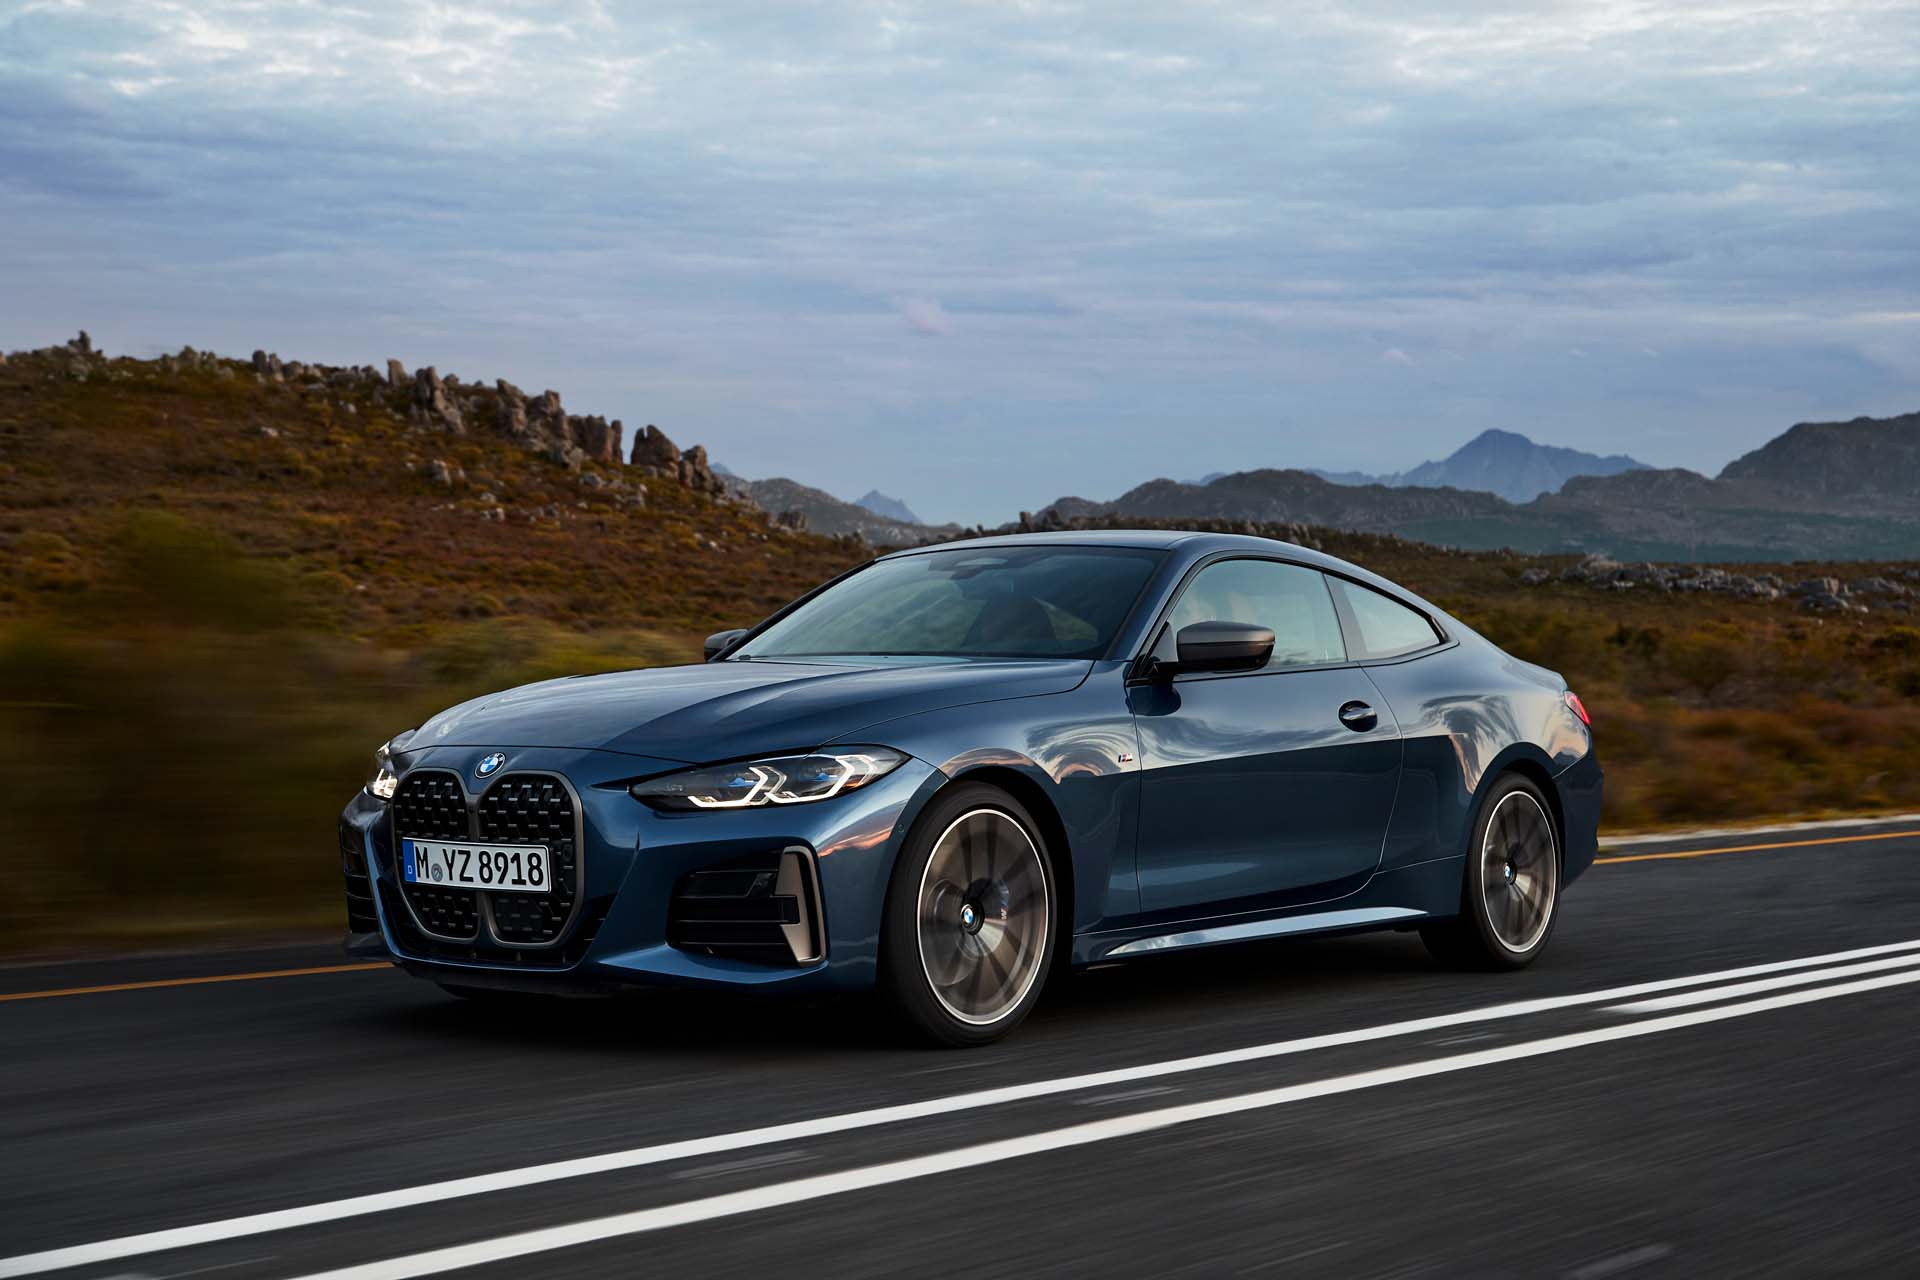 Featured Image of BMW 4 Series New Style, Bigger Kidneys Better?